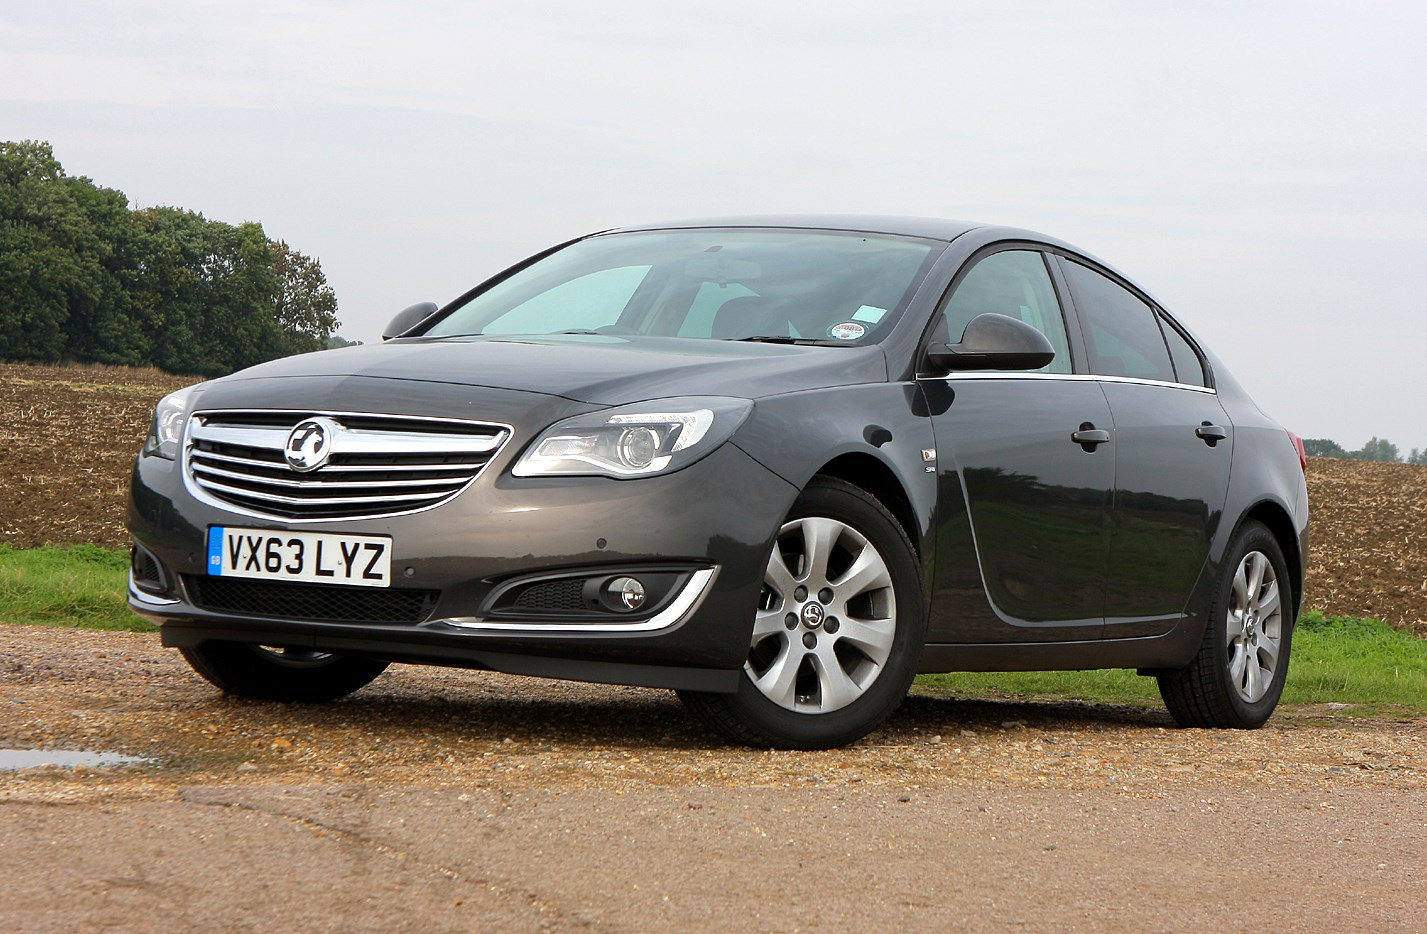 The best cheap family cars - Vauxhall Insignia